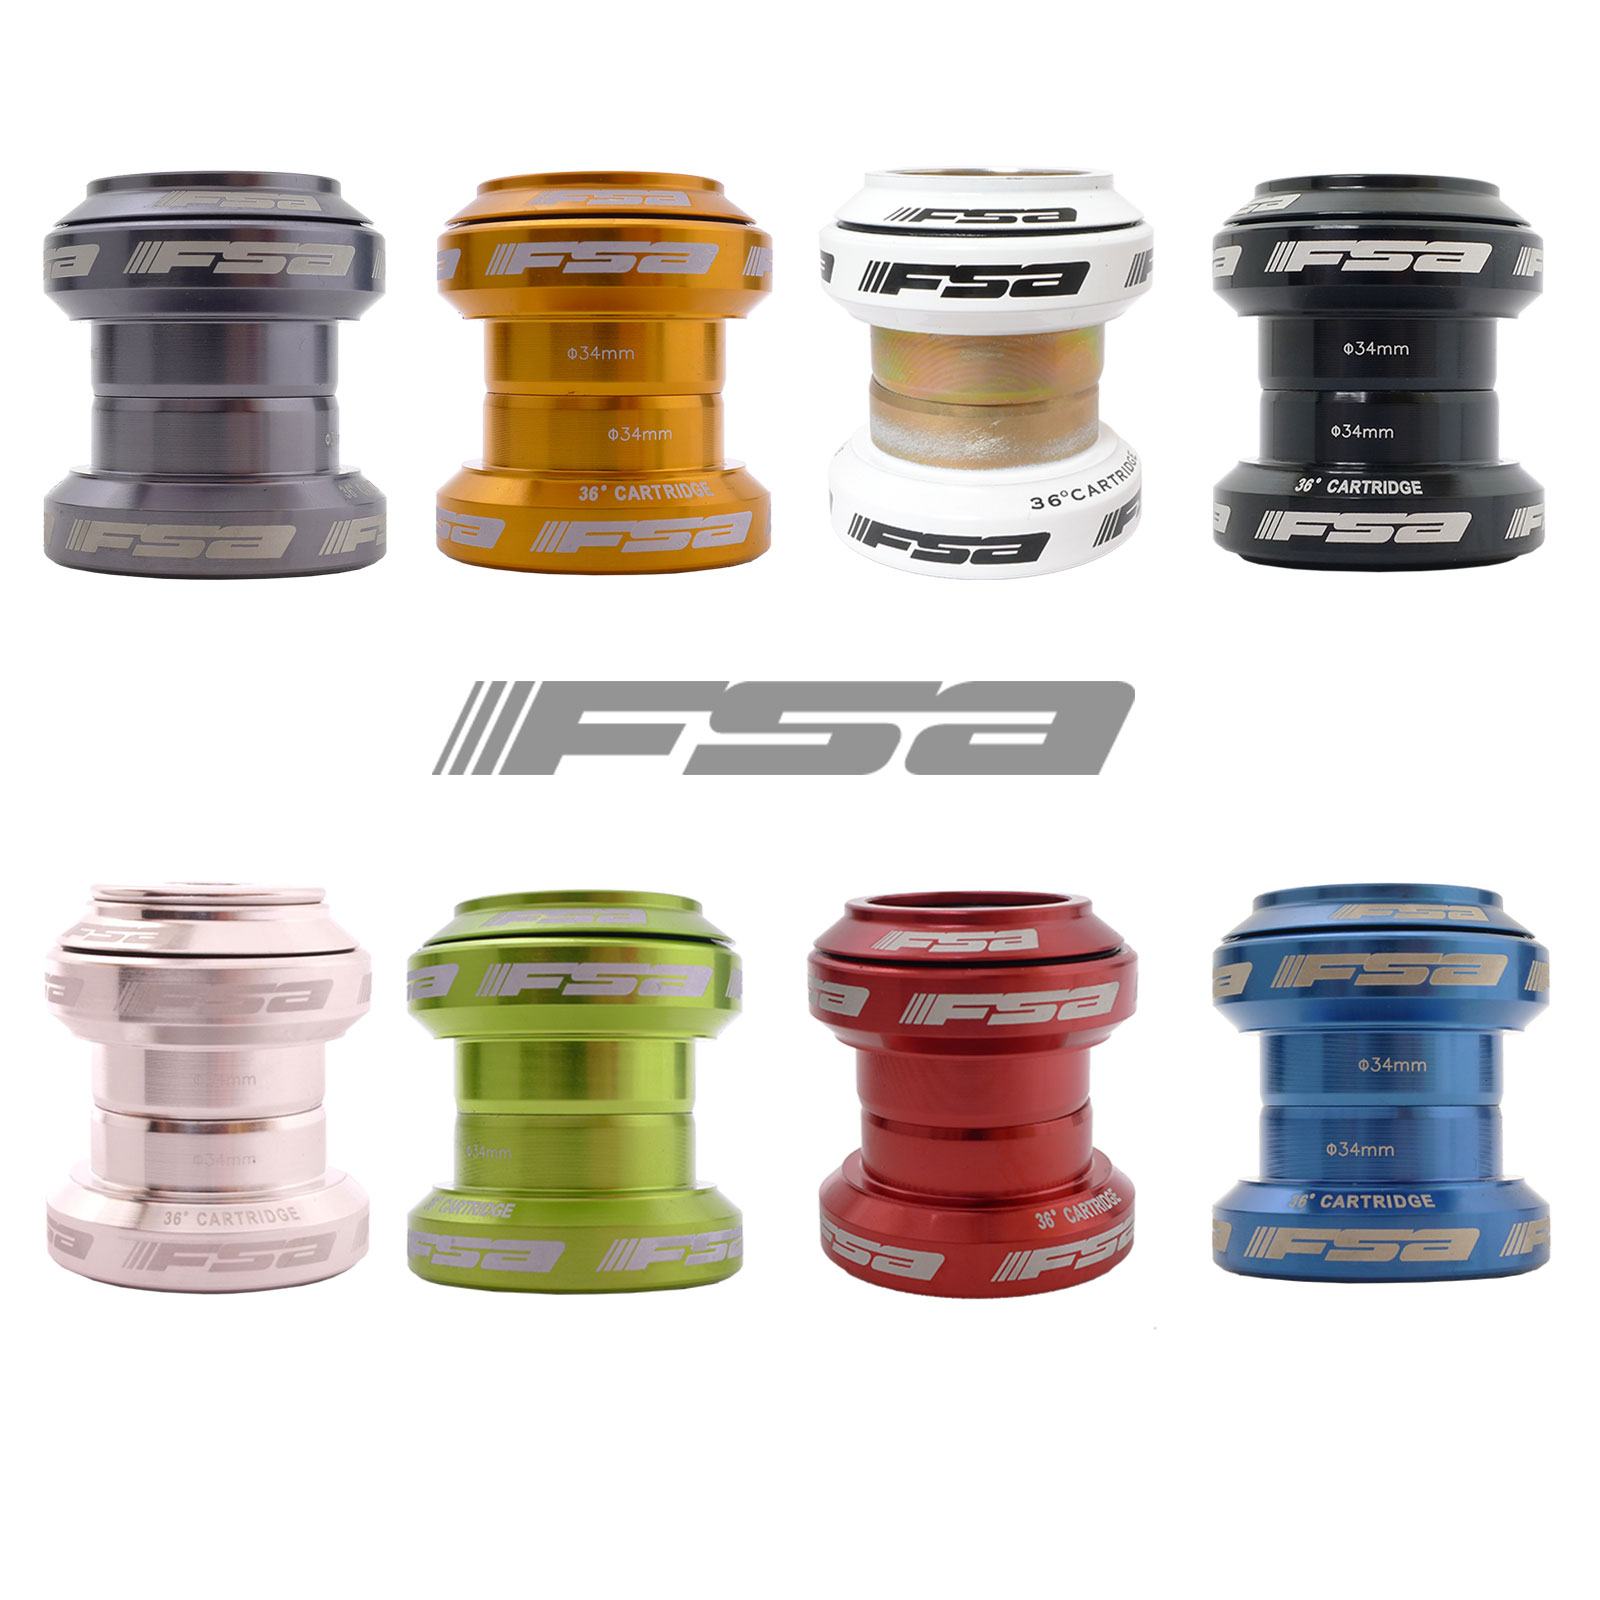 FSA ORBIT MX Threadless Forged Processed By Aluminum Alloy Lower Part 1 pc